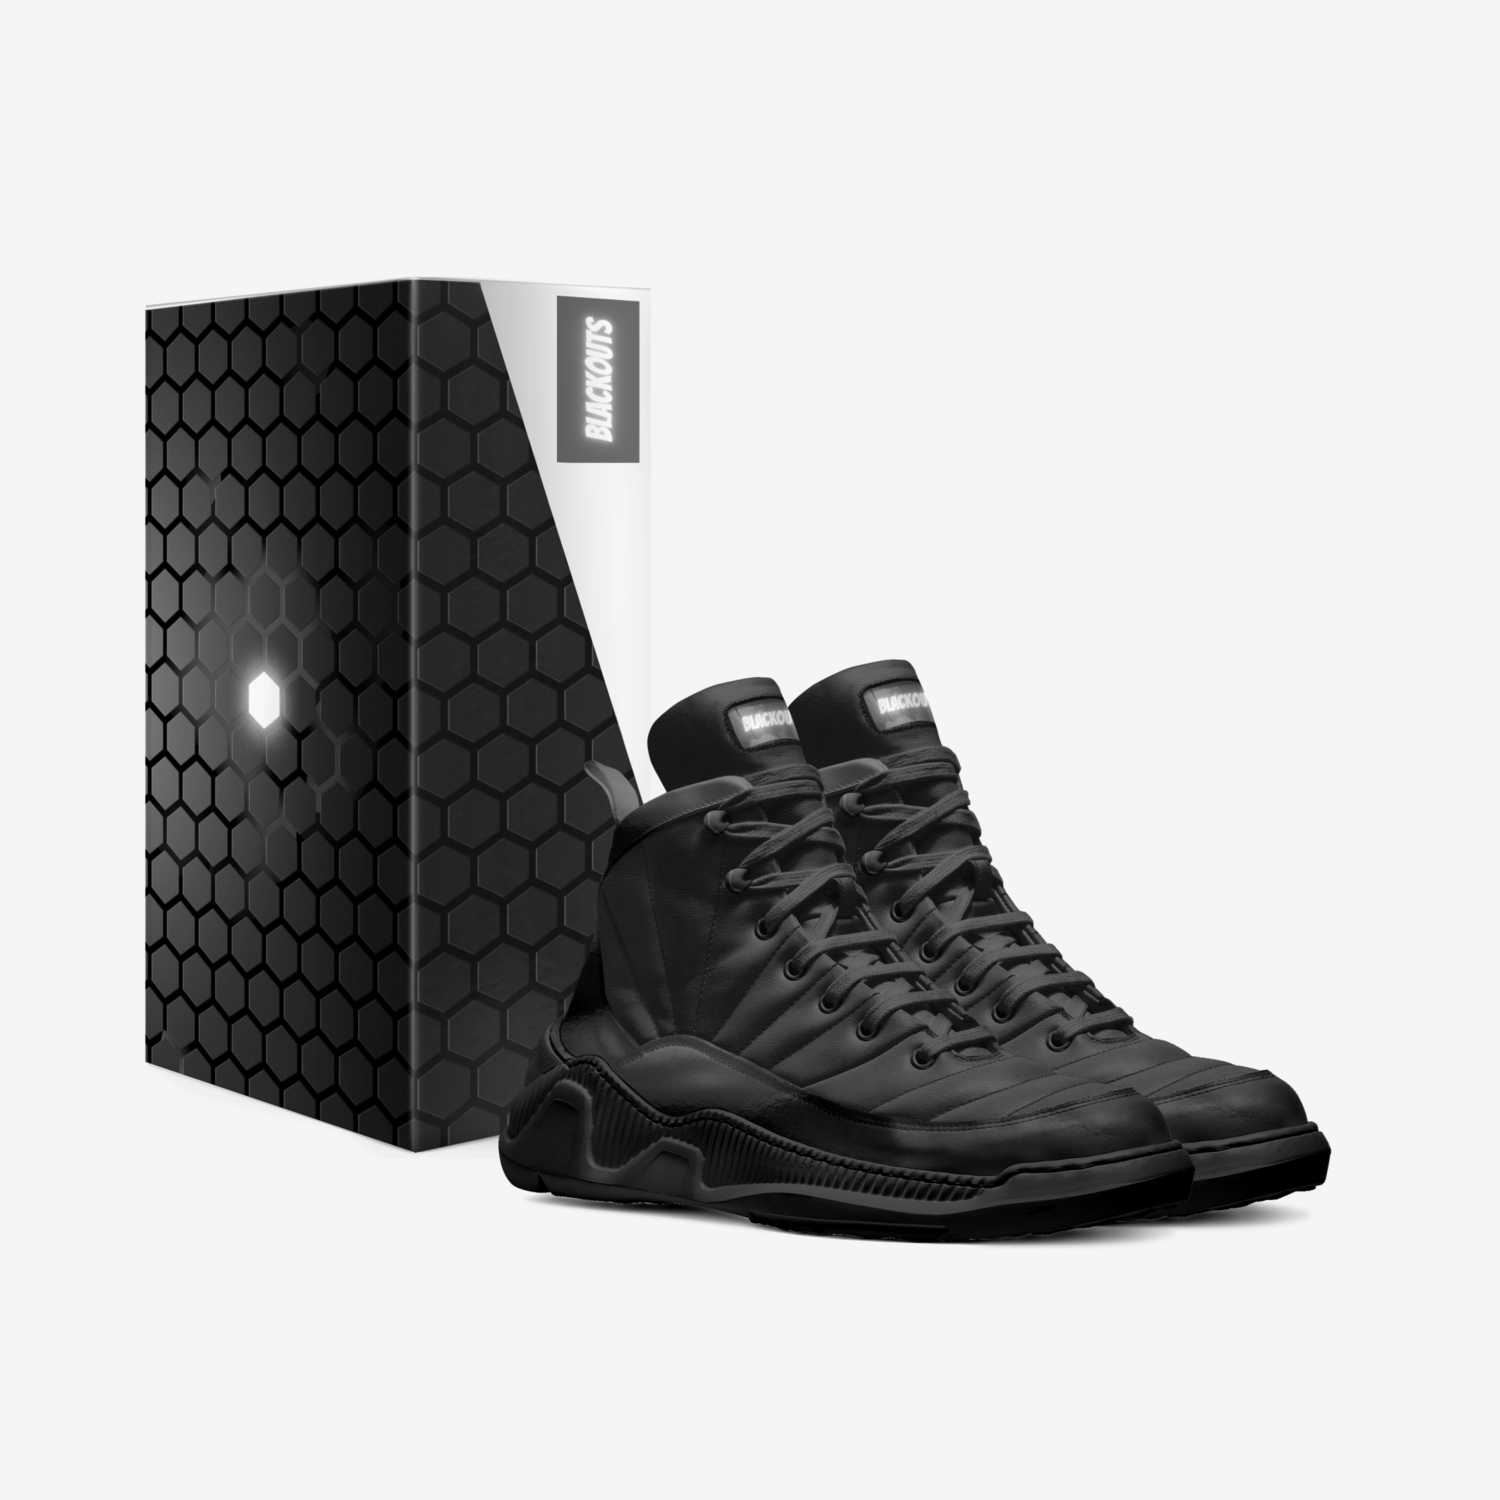 23's (BlackOuts) custom made in Italy shoes by Androgynal Llc | Box view